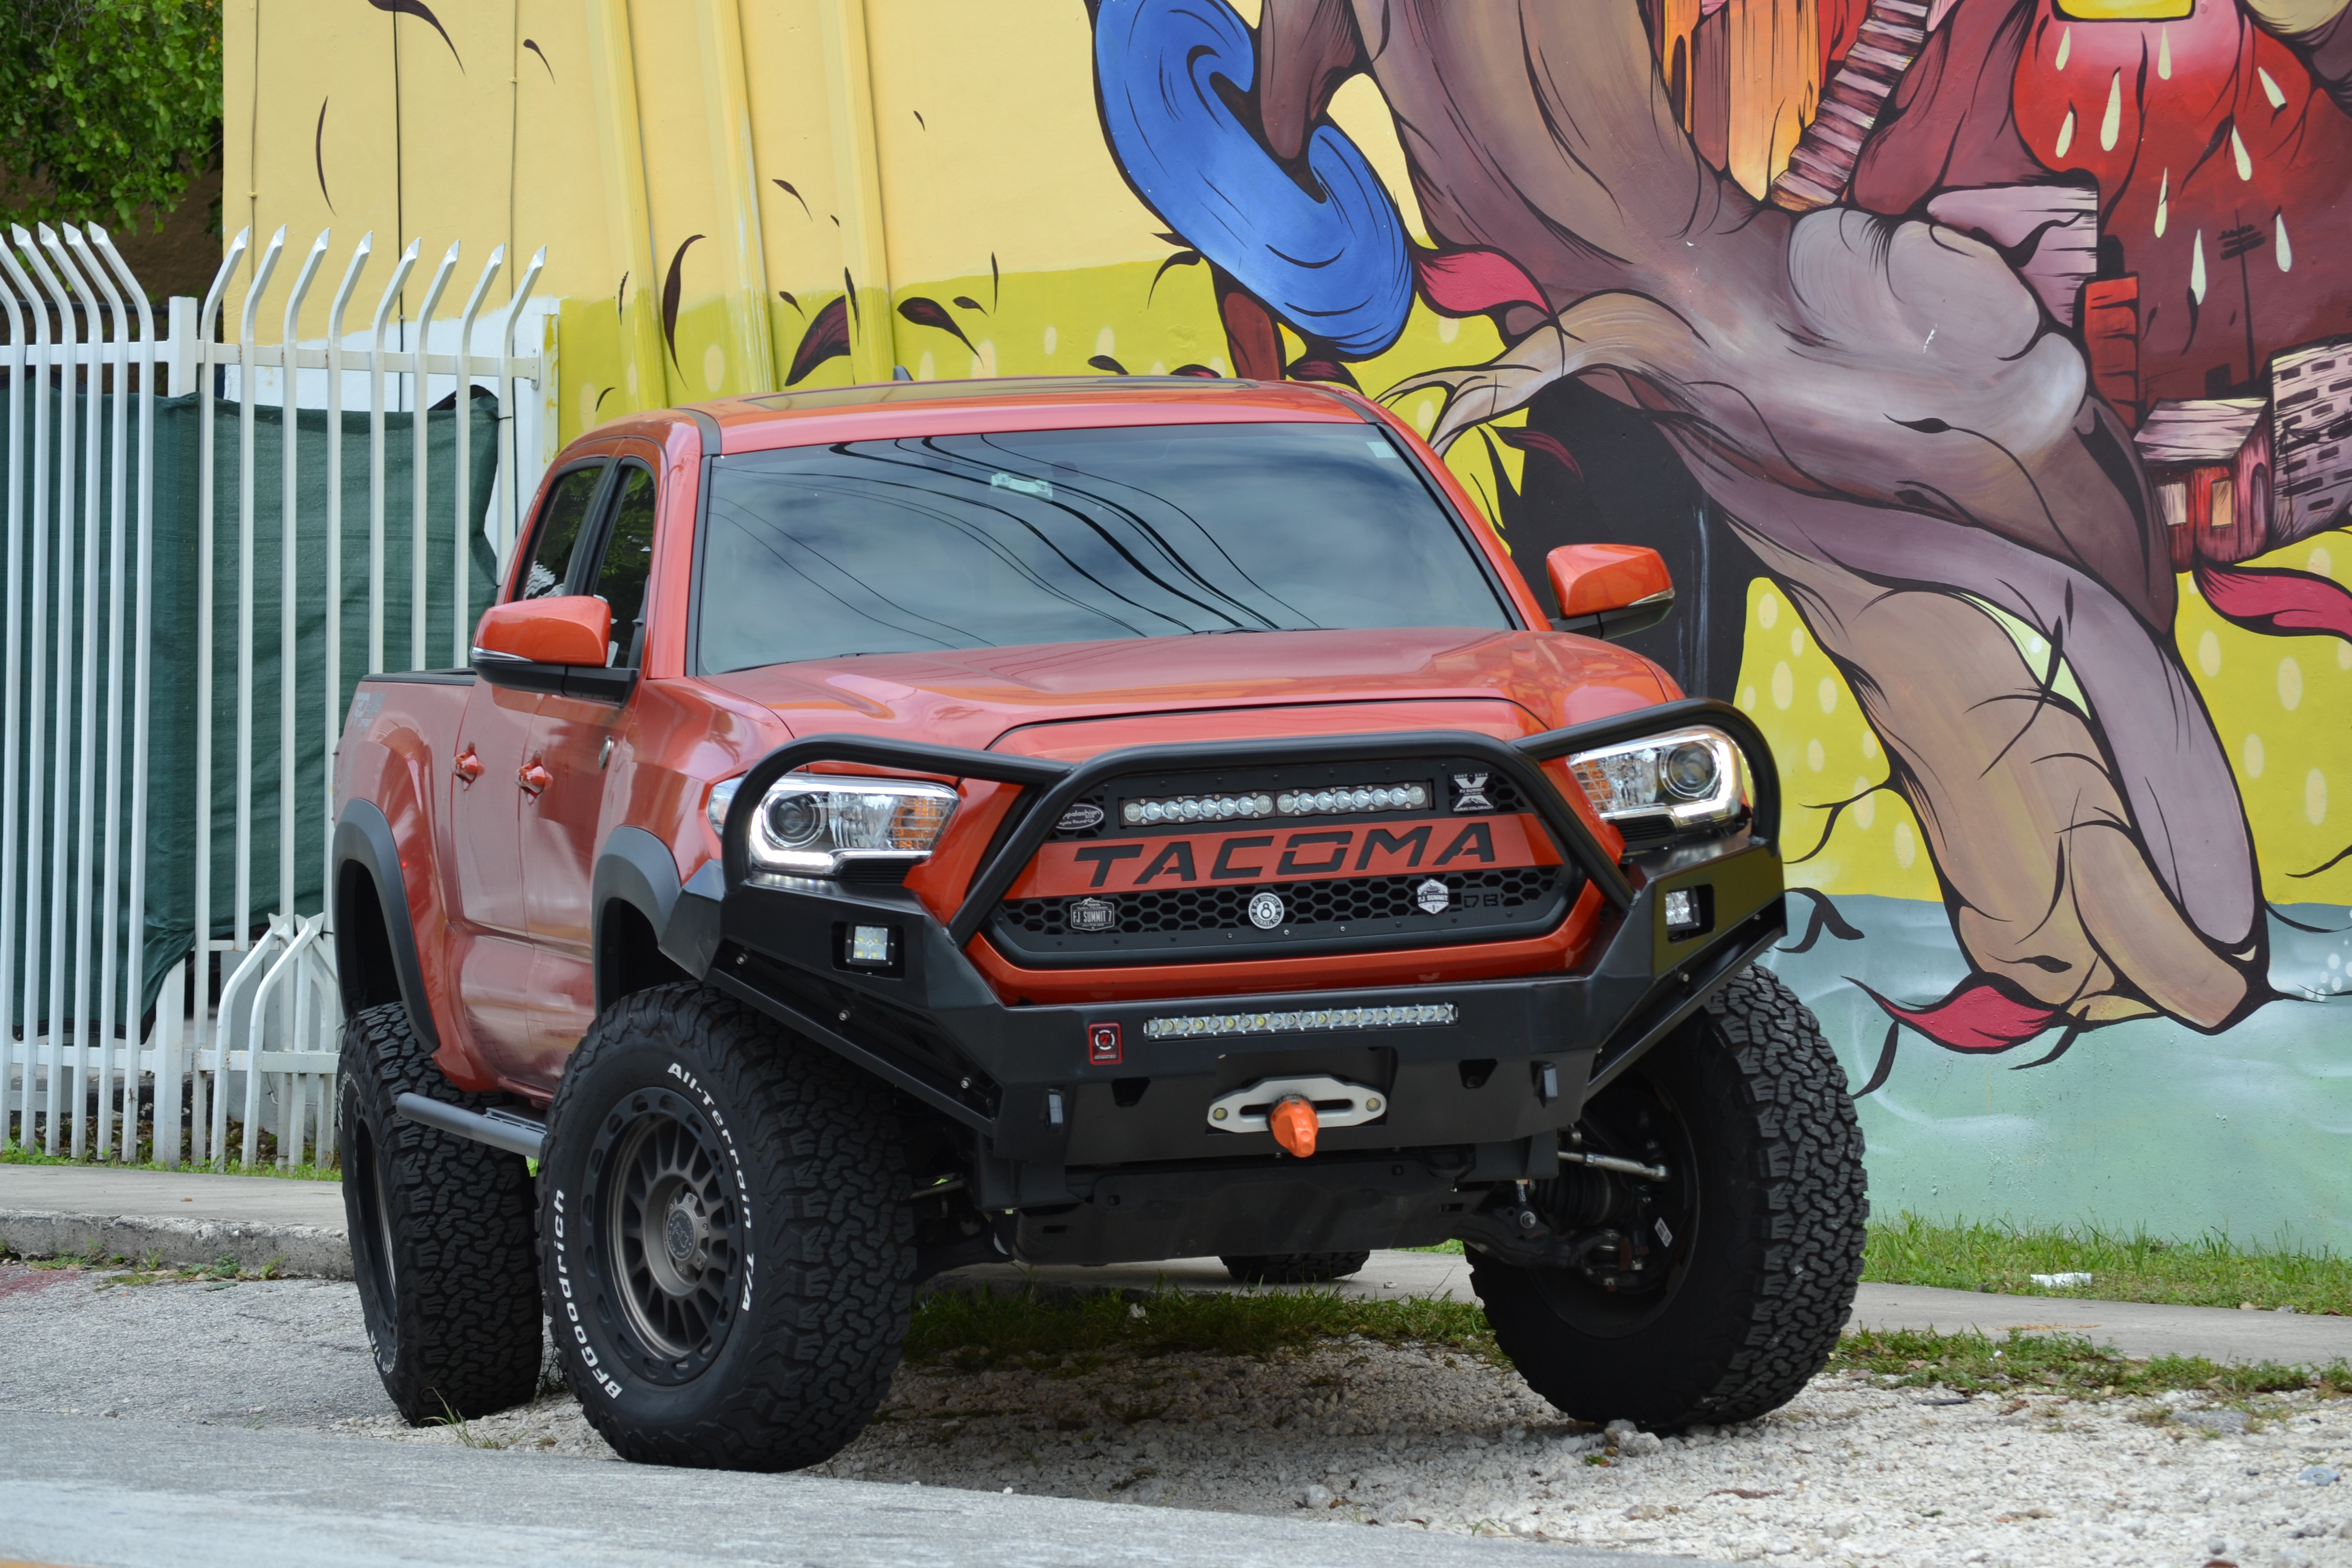 Toyota Tacoma Front Bumper >> Toyota Tacoma Front Bumper With Loops 2016 Proline 4wd Equipment